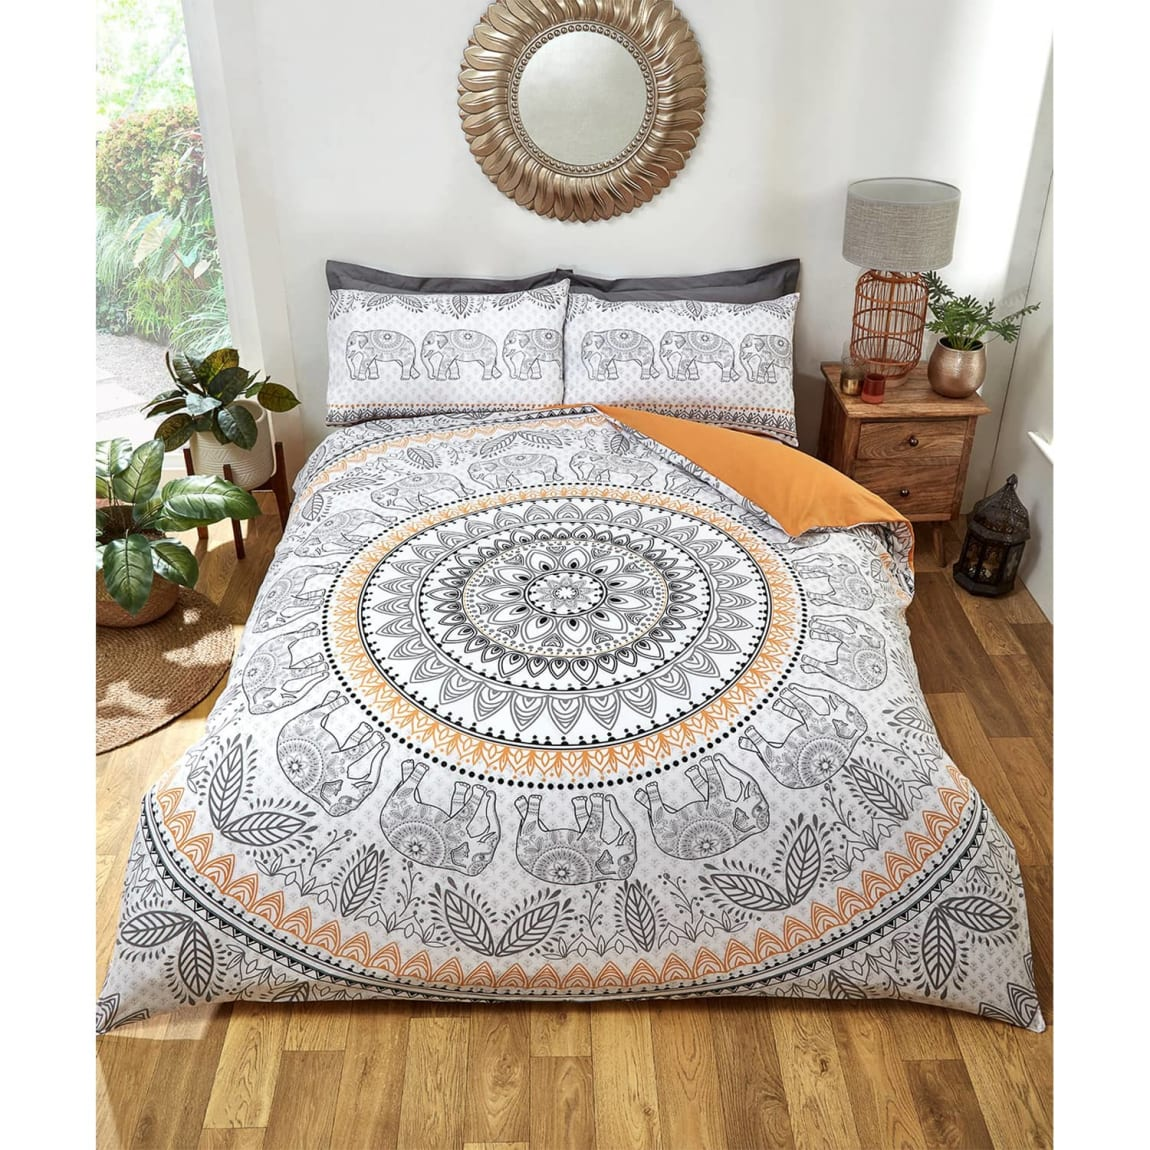 Loft Studio Elephant Double Duvet Set - Mono